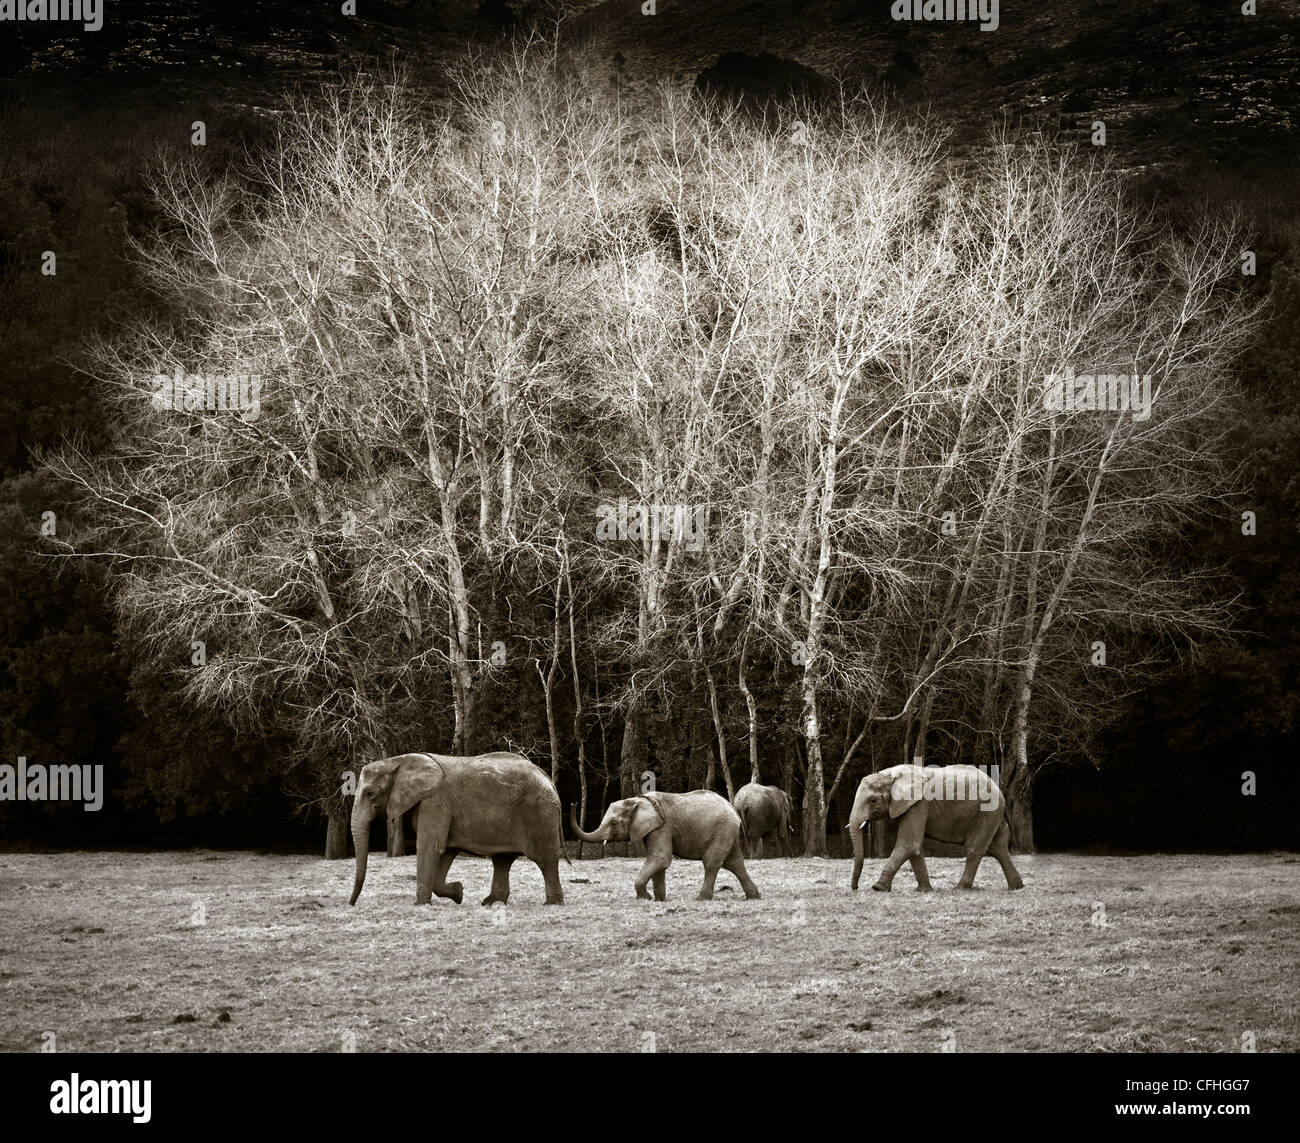 Three African elephants walking, Cabarceno, Spain - Stock Image